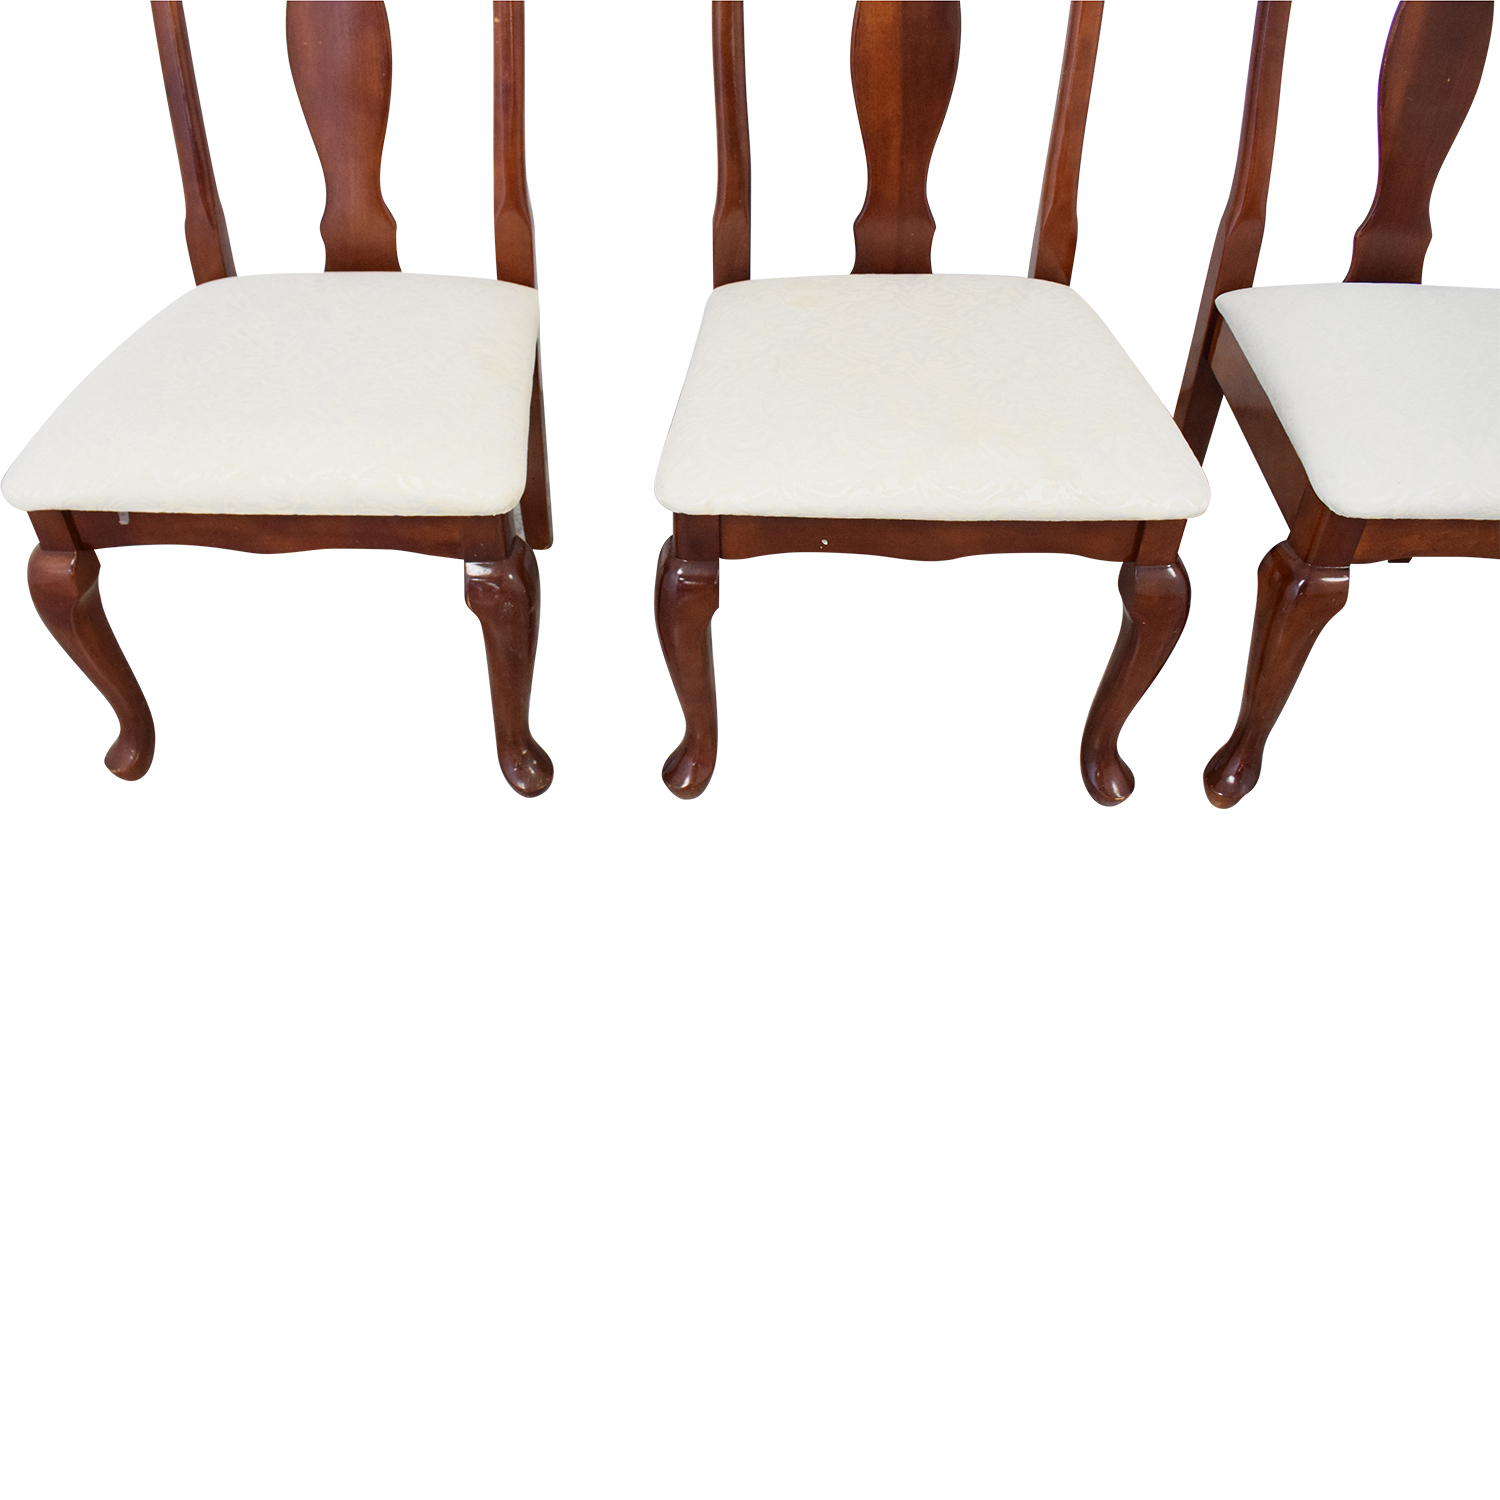 Upholsted Dining Chairs sale